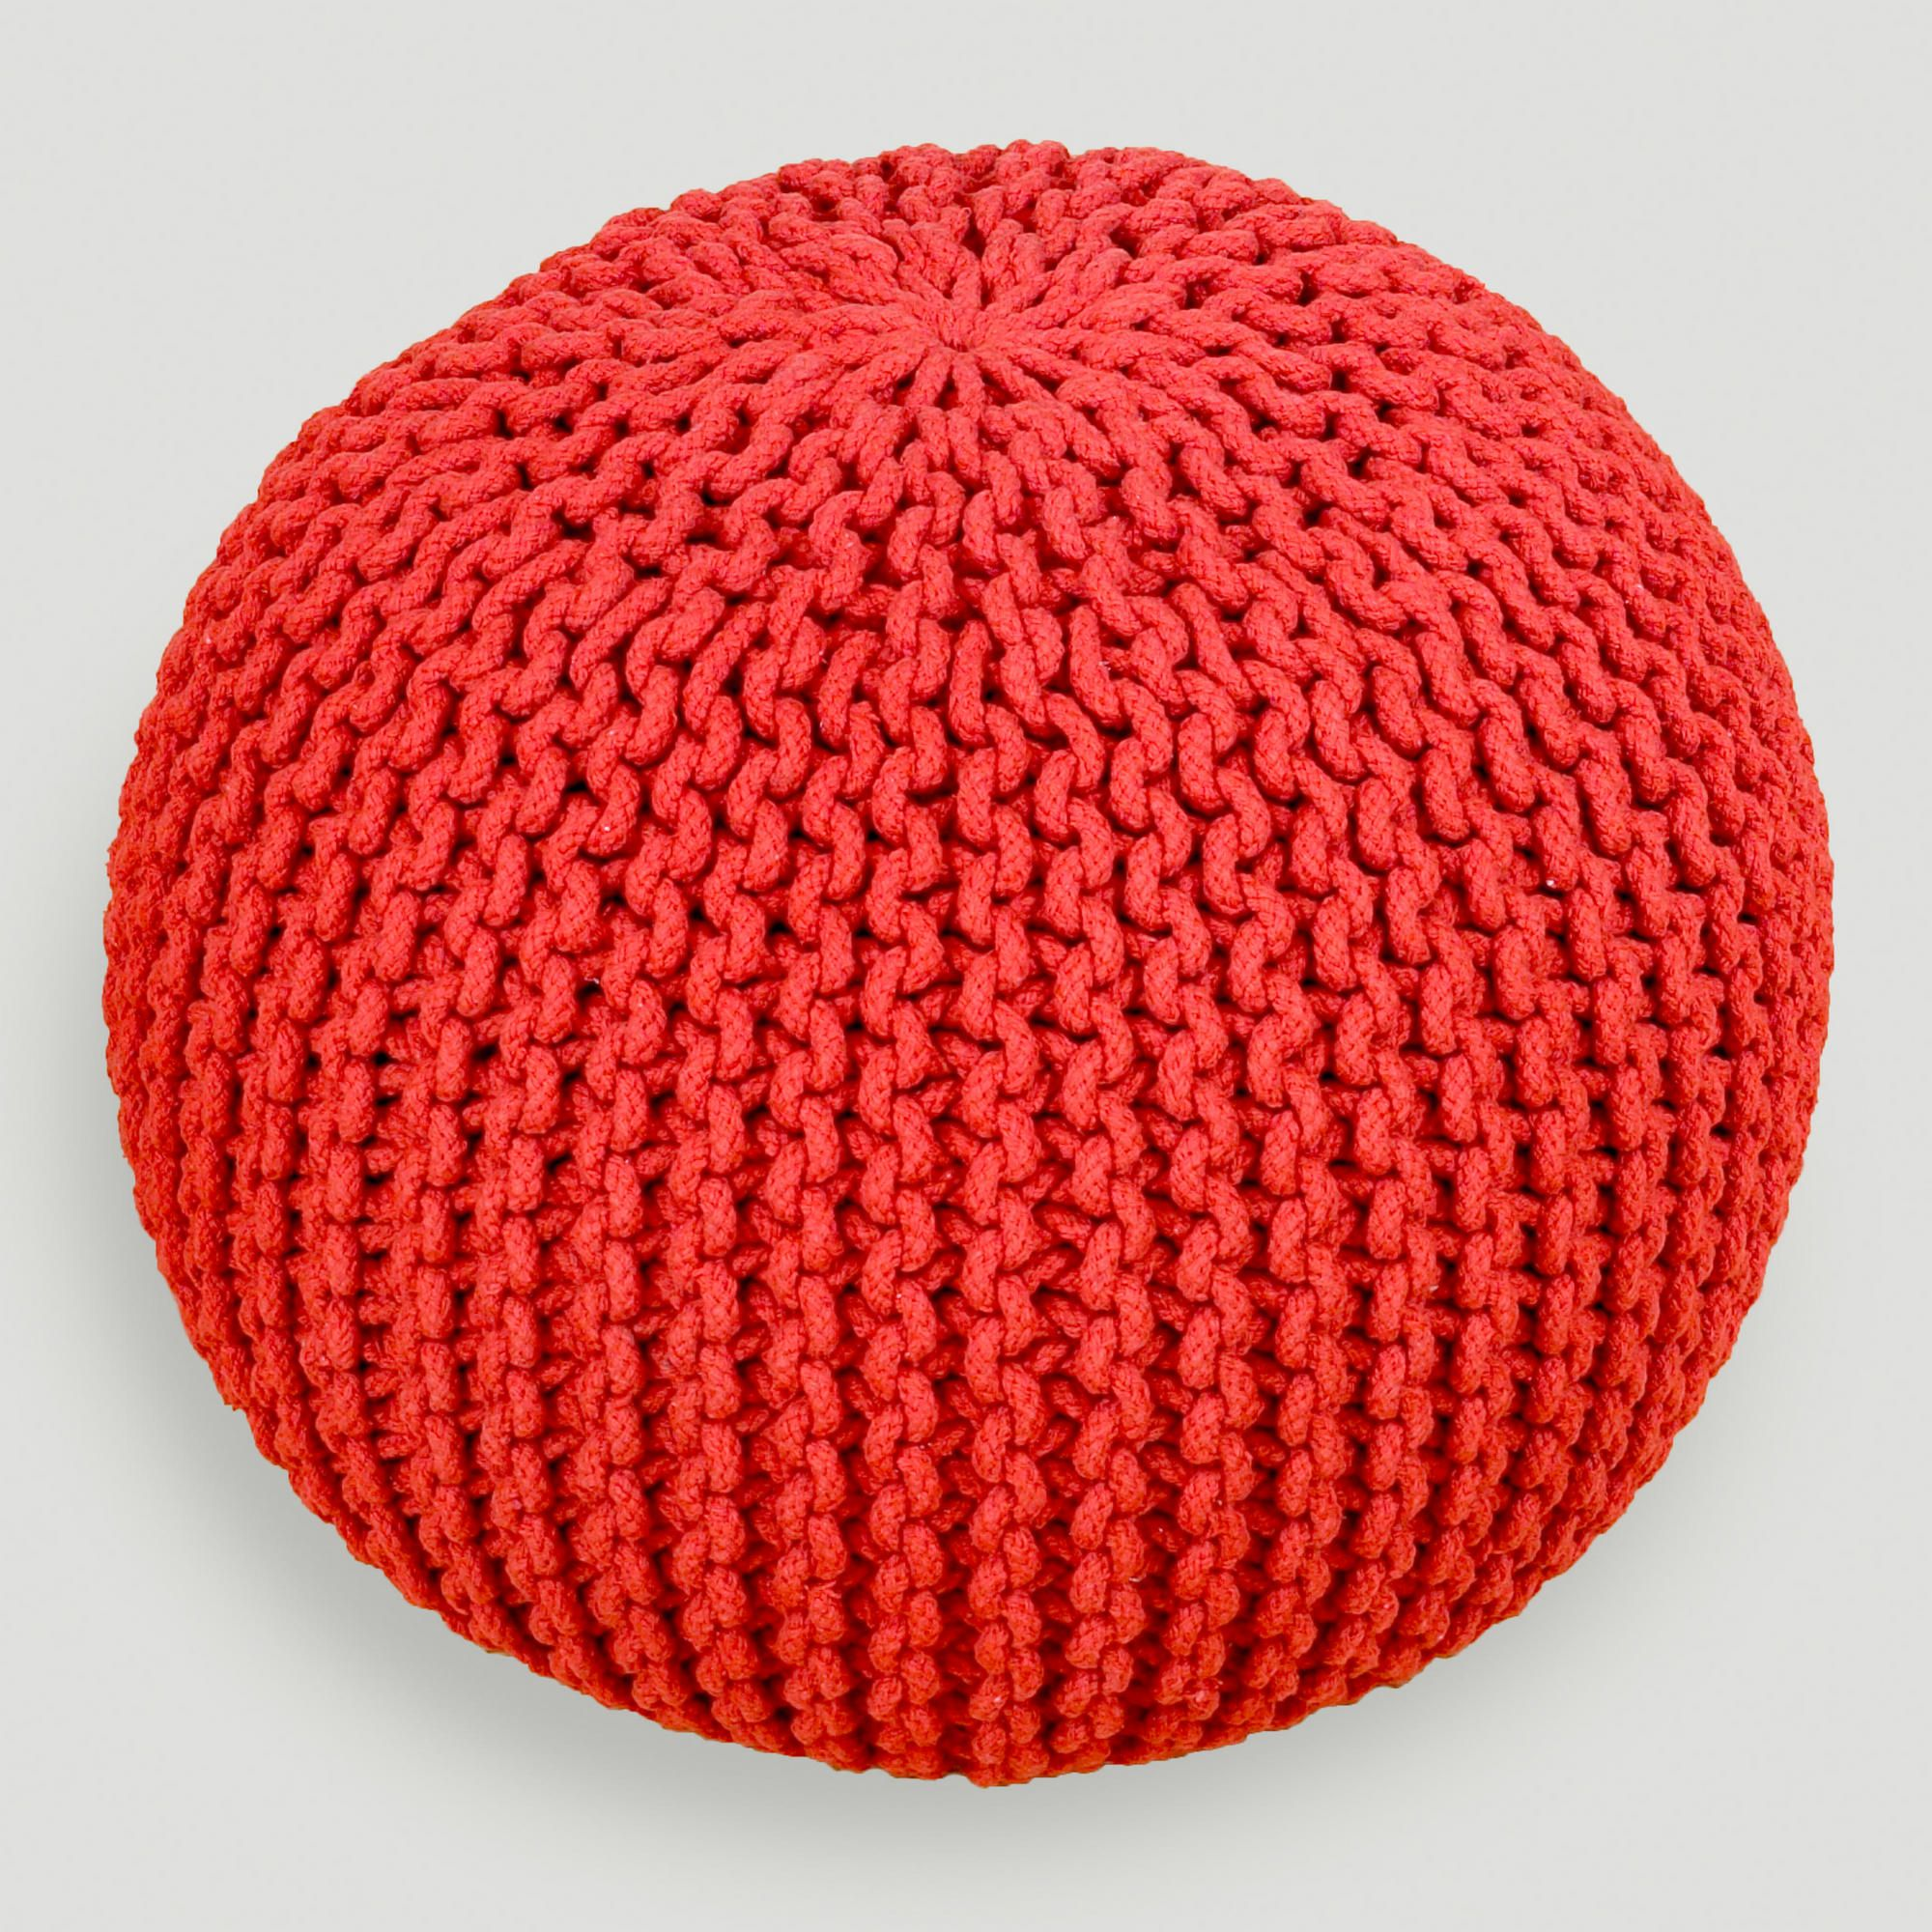 Chili Pepper Knitted Pouf | World Market